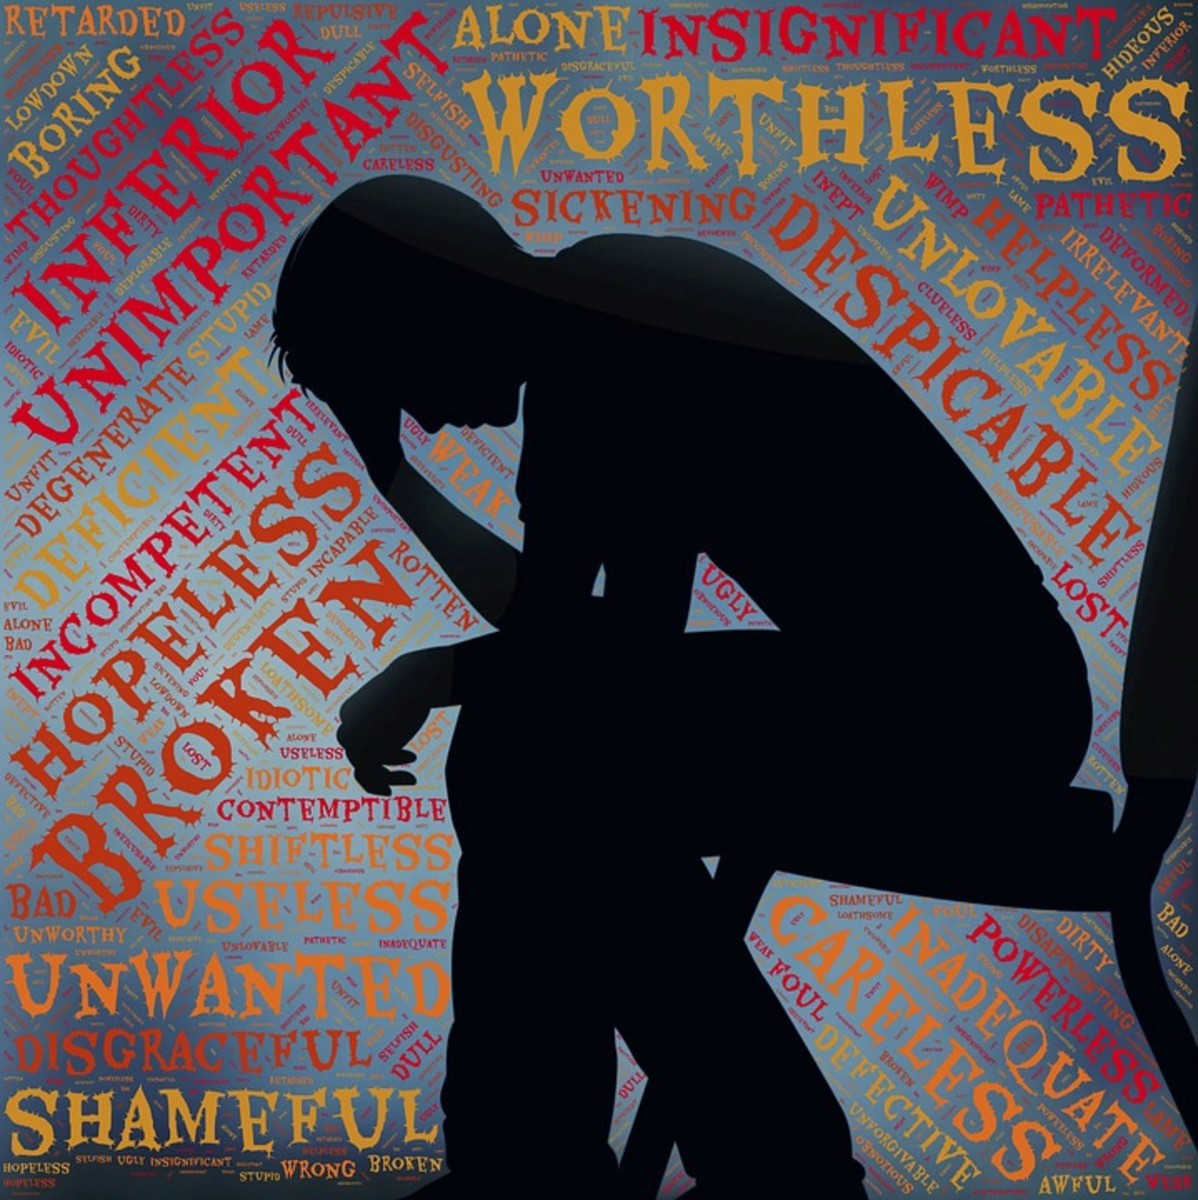 Depression isn't just sadness. Clinical depression can make you feel worthless, unmotivated, and guilty.